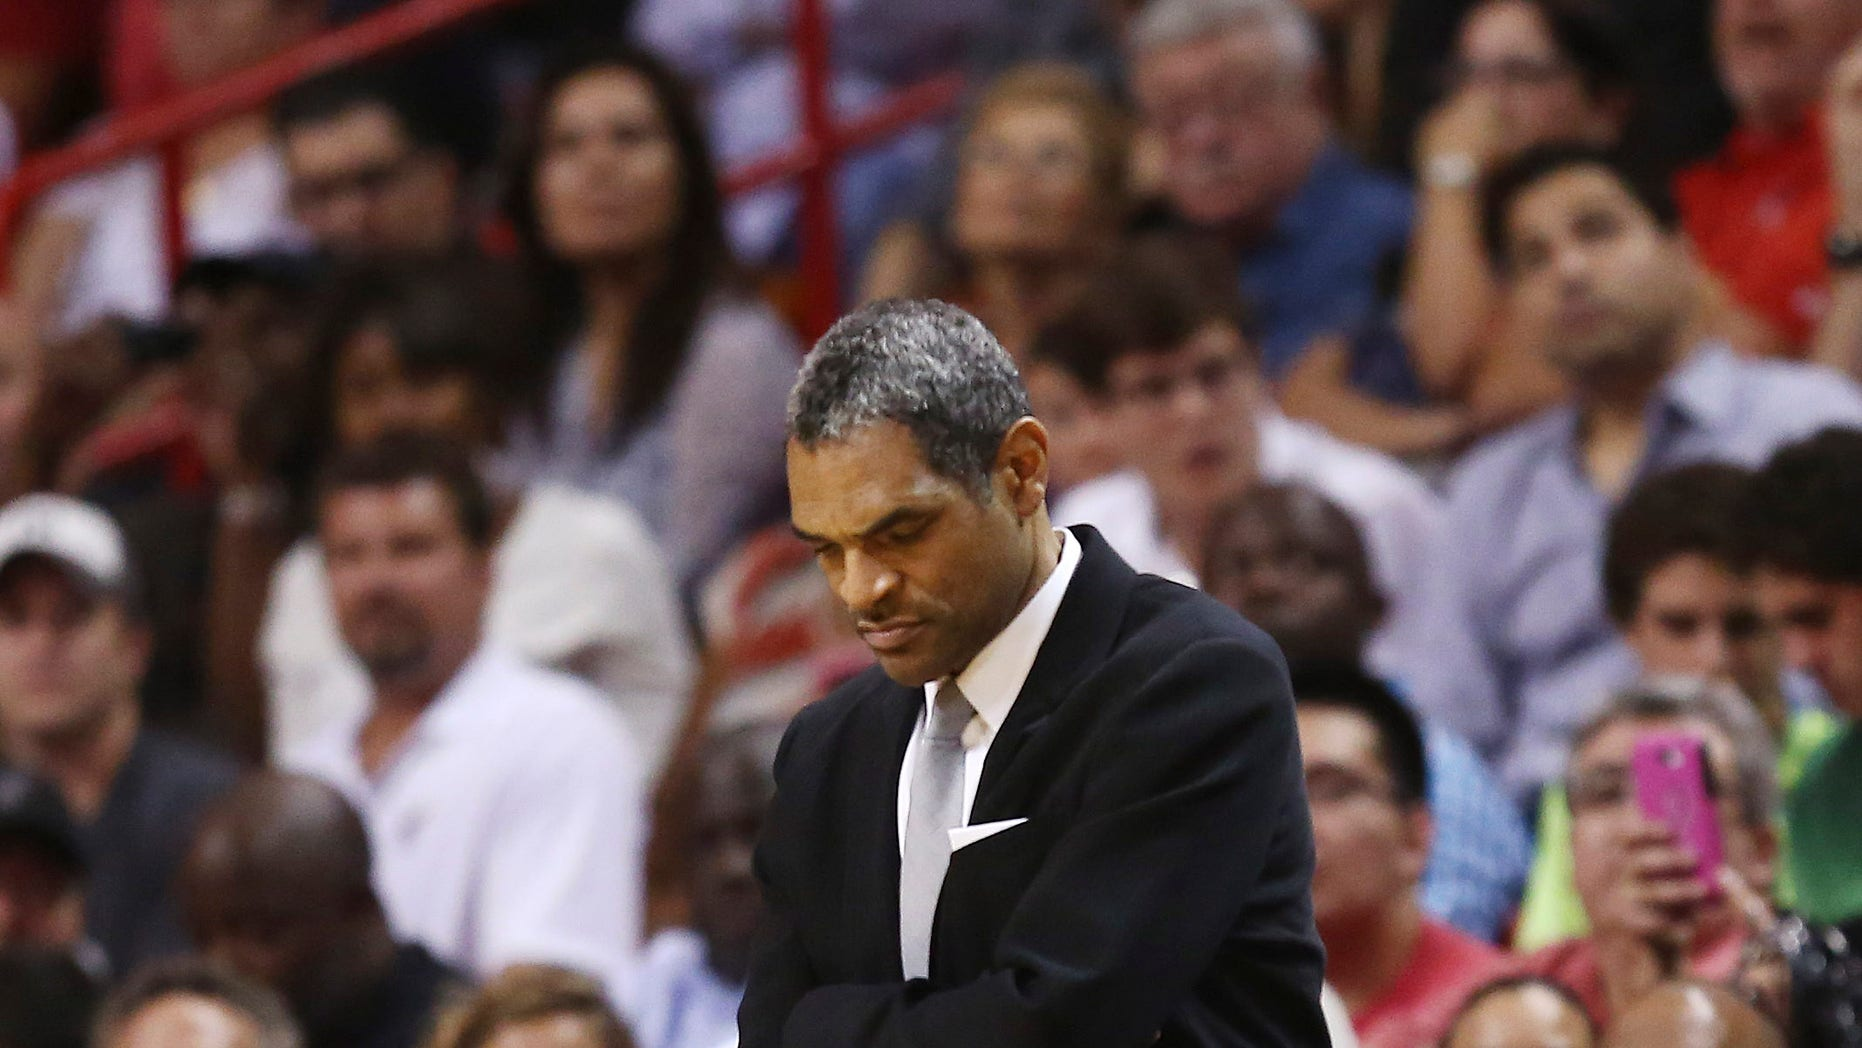 Detroit Pistons head coach Maurice Cheeks watches game action against the Miami Heat during the second half of an NBA basketball game in Miami, Monday, Feb. 3, 2014. The Heat won 102-96. (AP Photo/J Pat Carter)